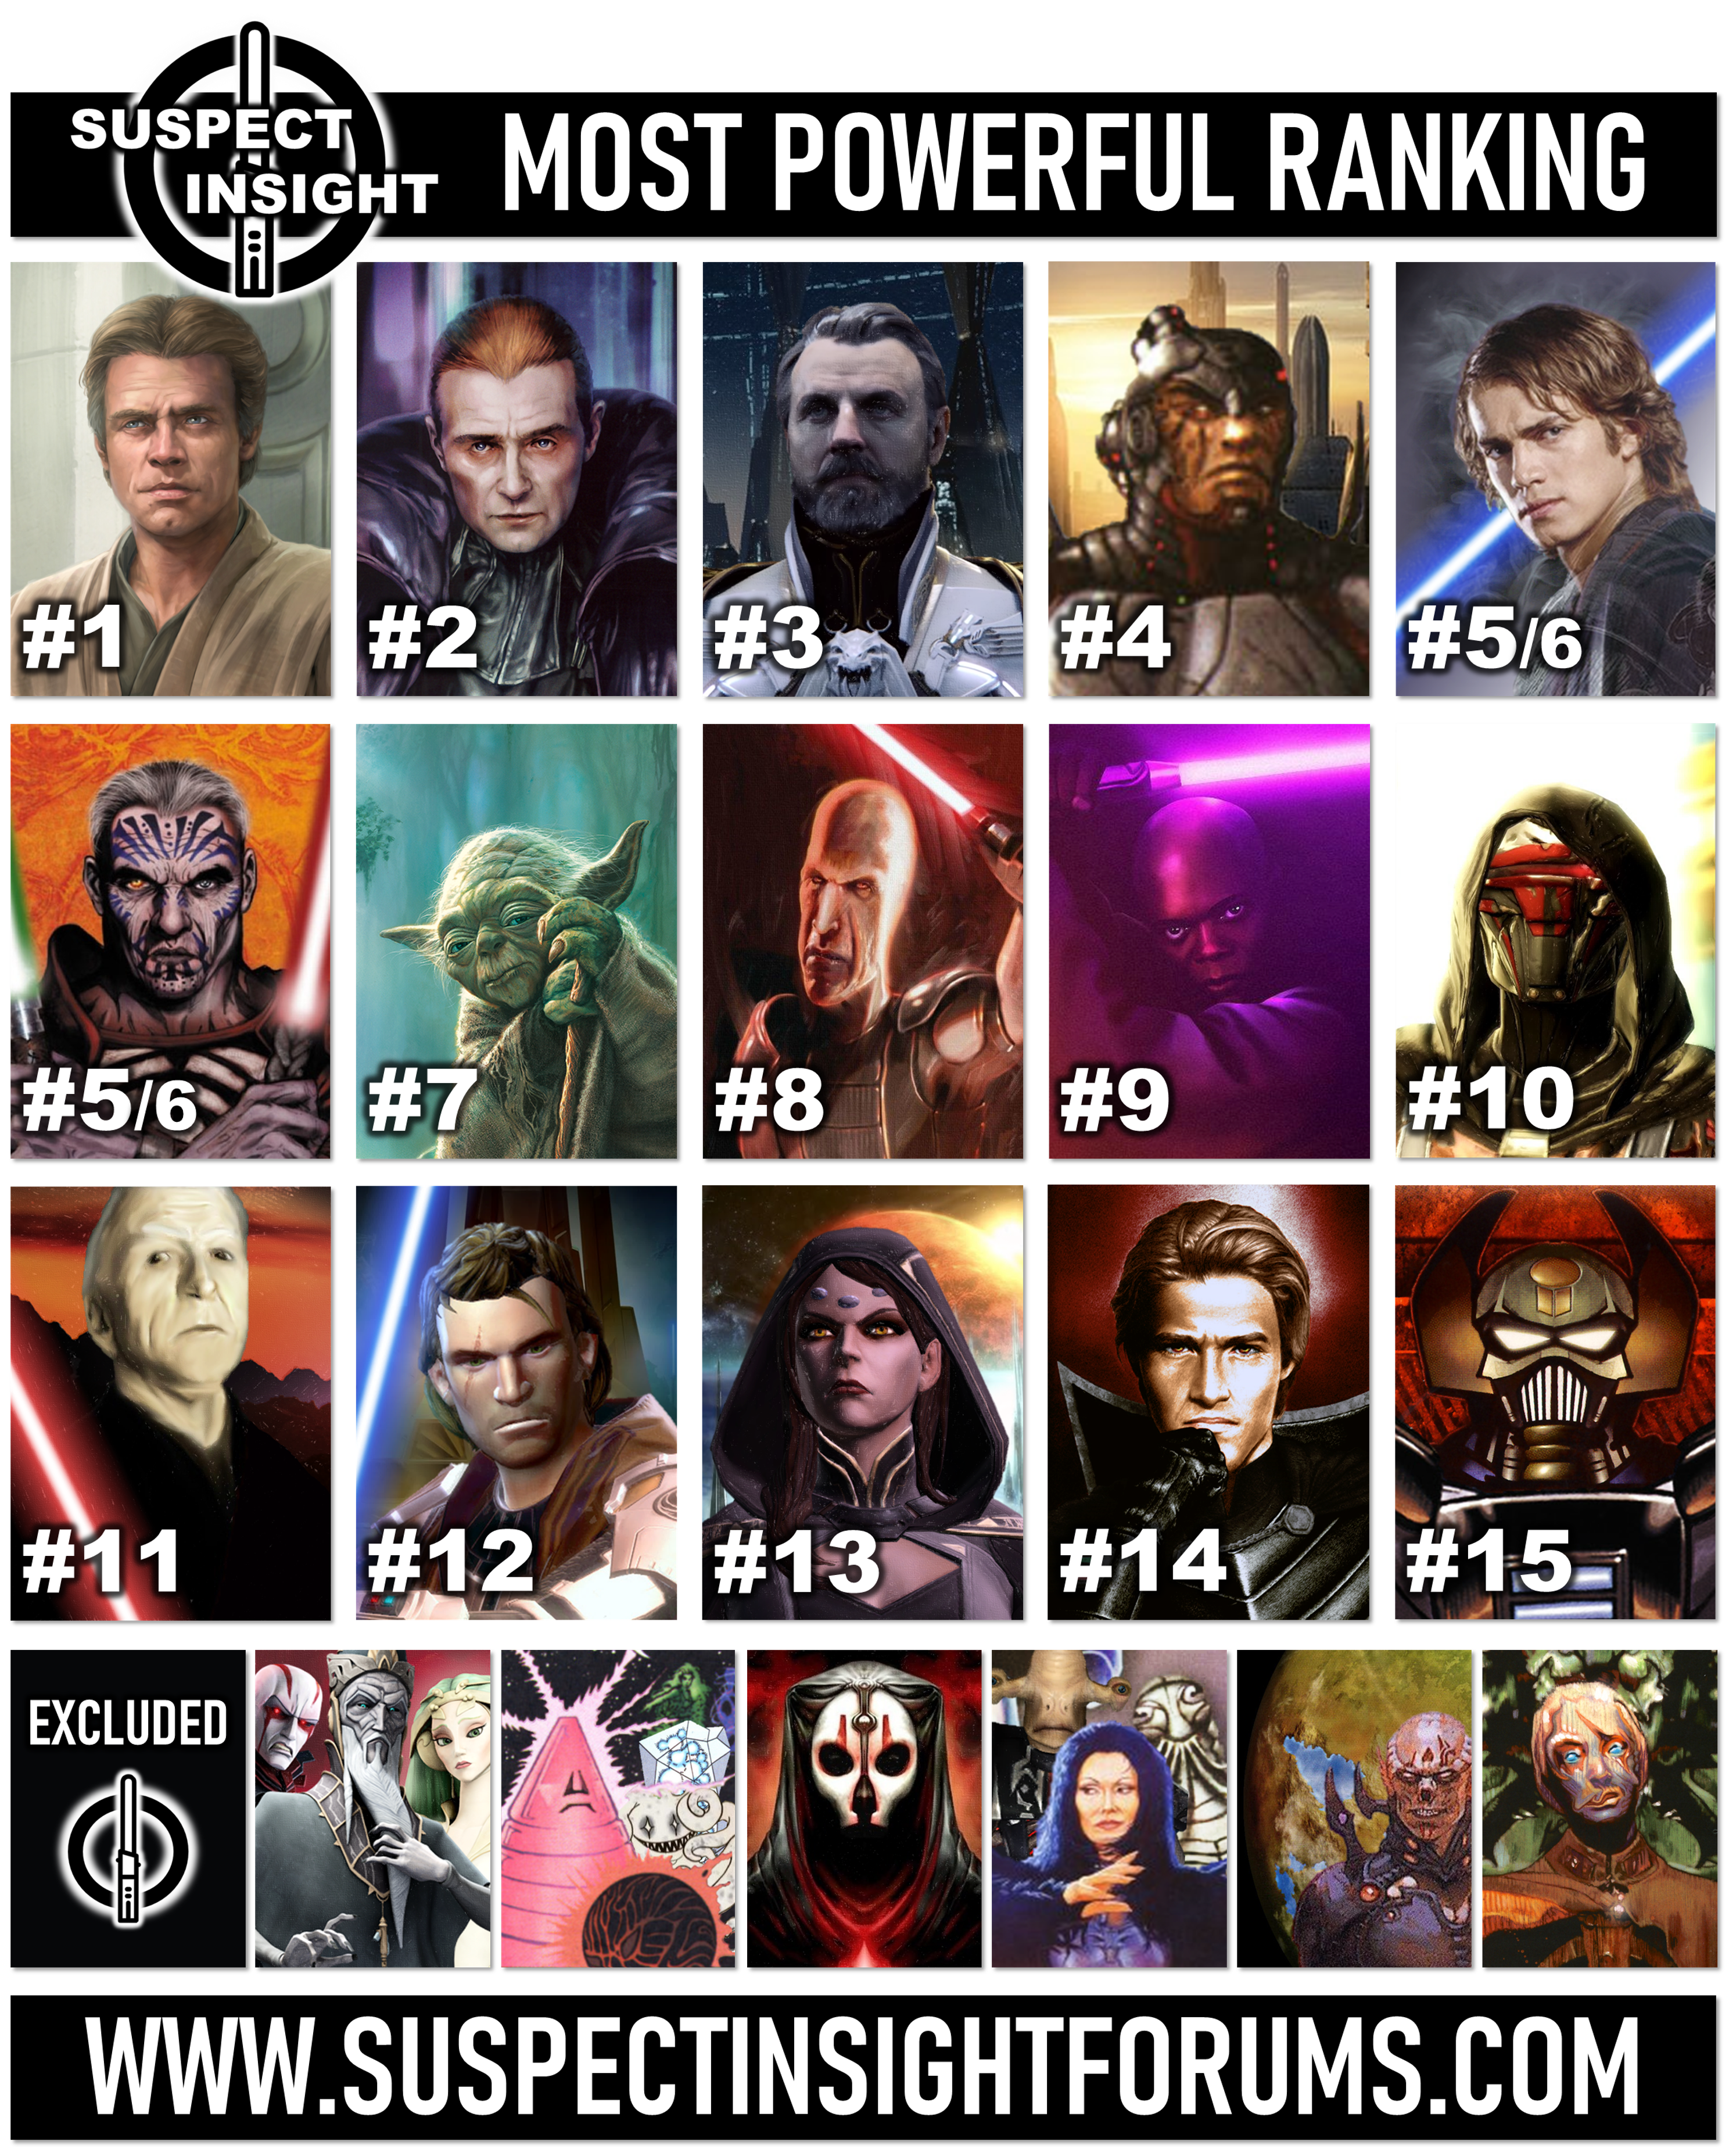 Top Fifteen Most Powerful Star Wars Characters - Ultimate Source Compendium Suspectinsightforums.com